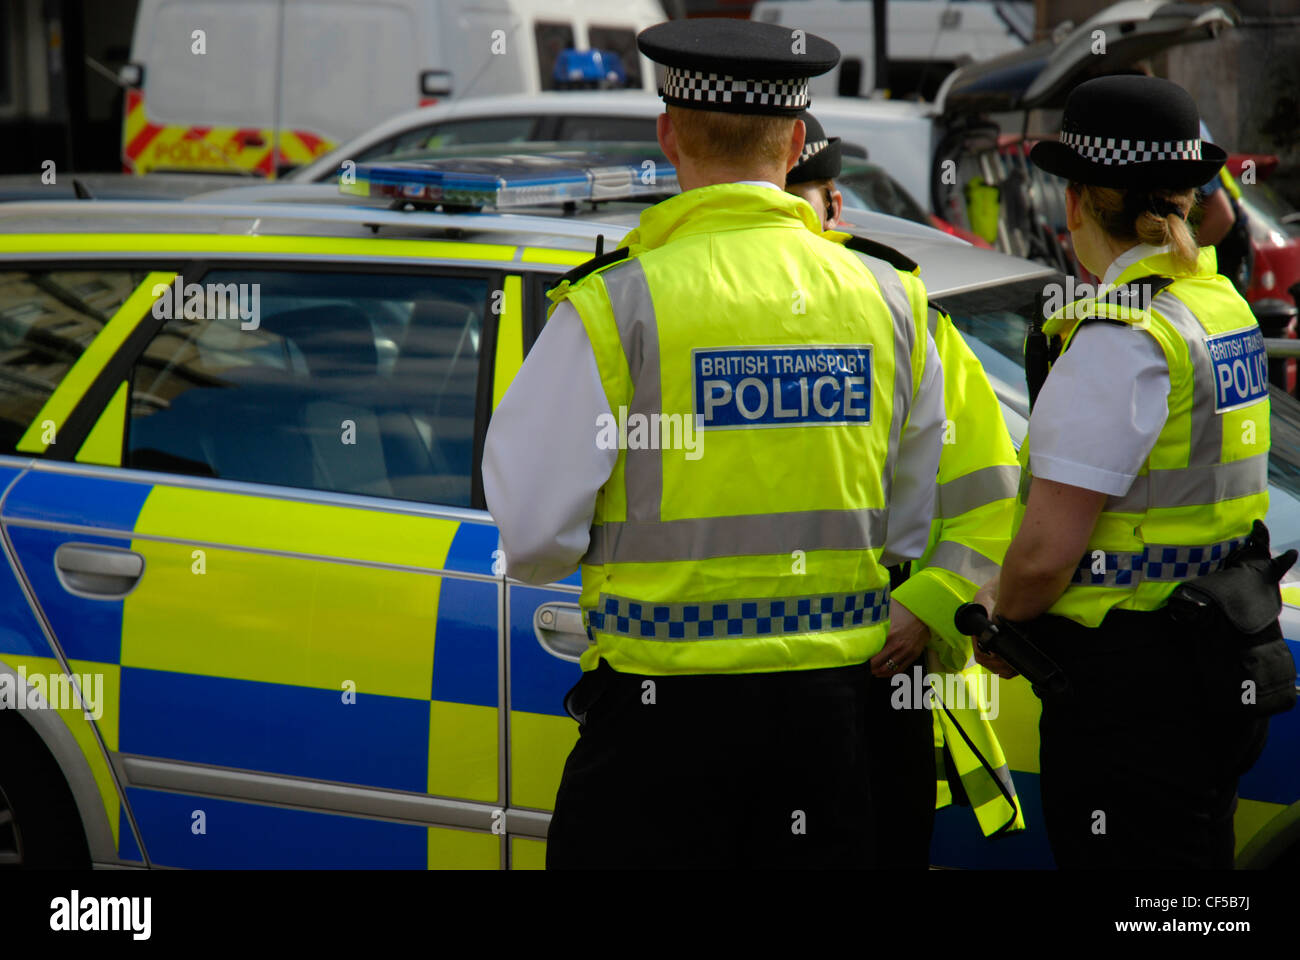 British transport police officers in yellow jackets standing next to a police car in Westminster. - Stock Image